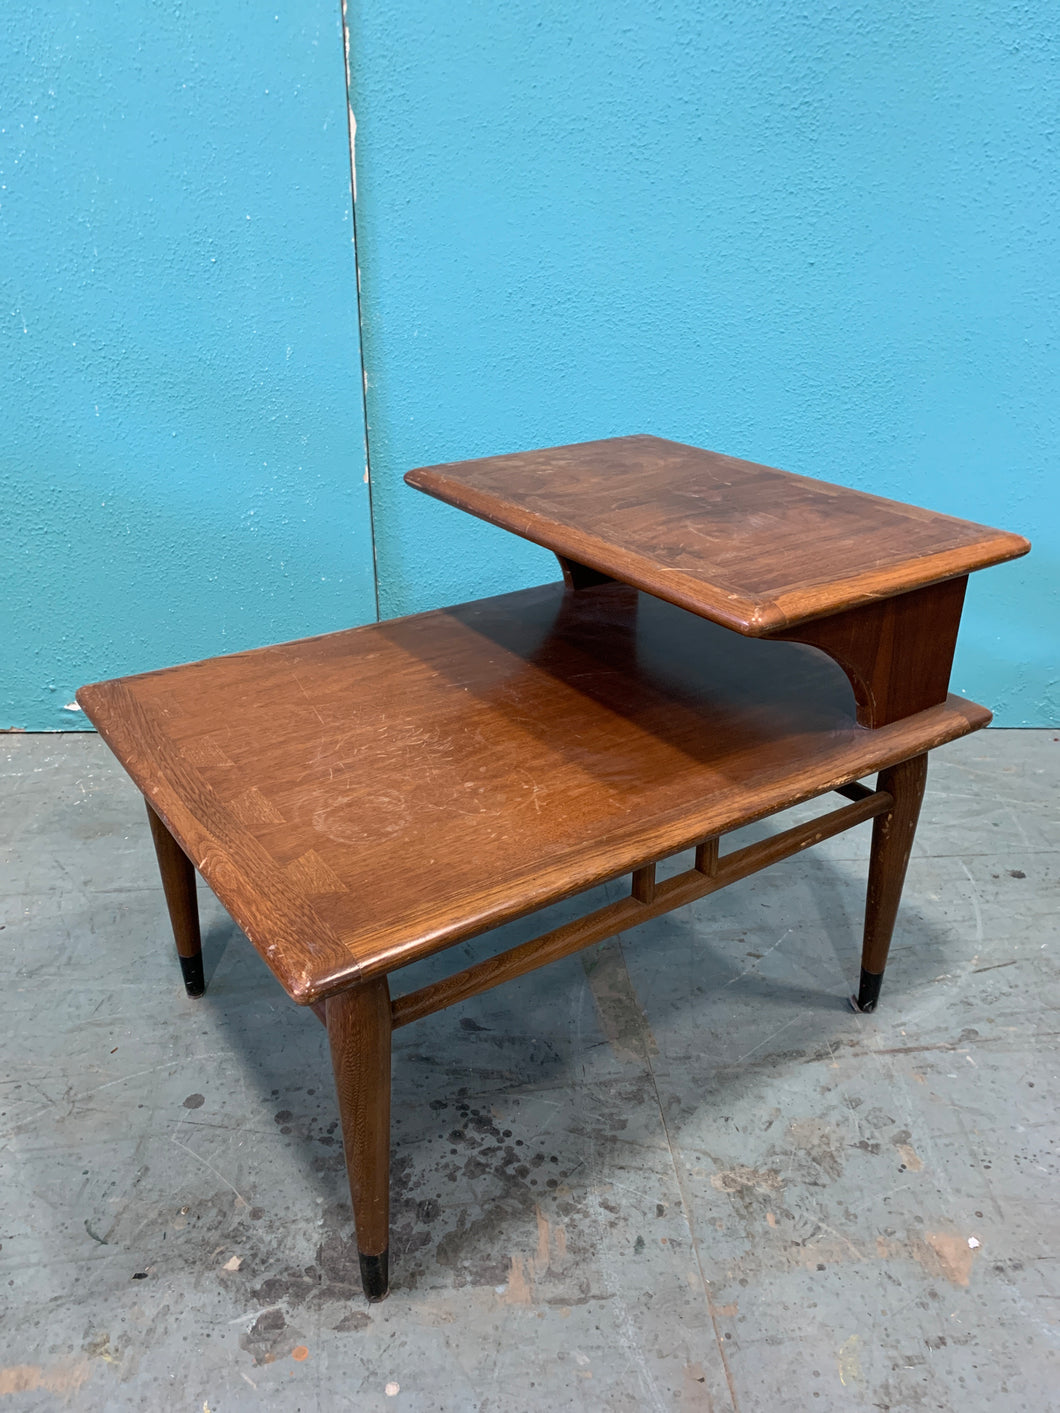 Tables de lecture en bois 1960